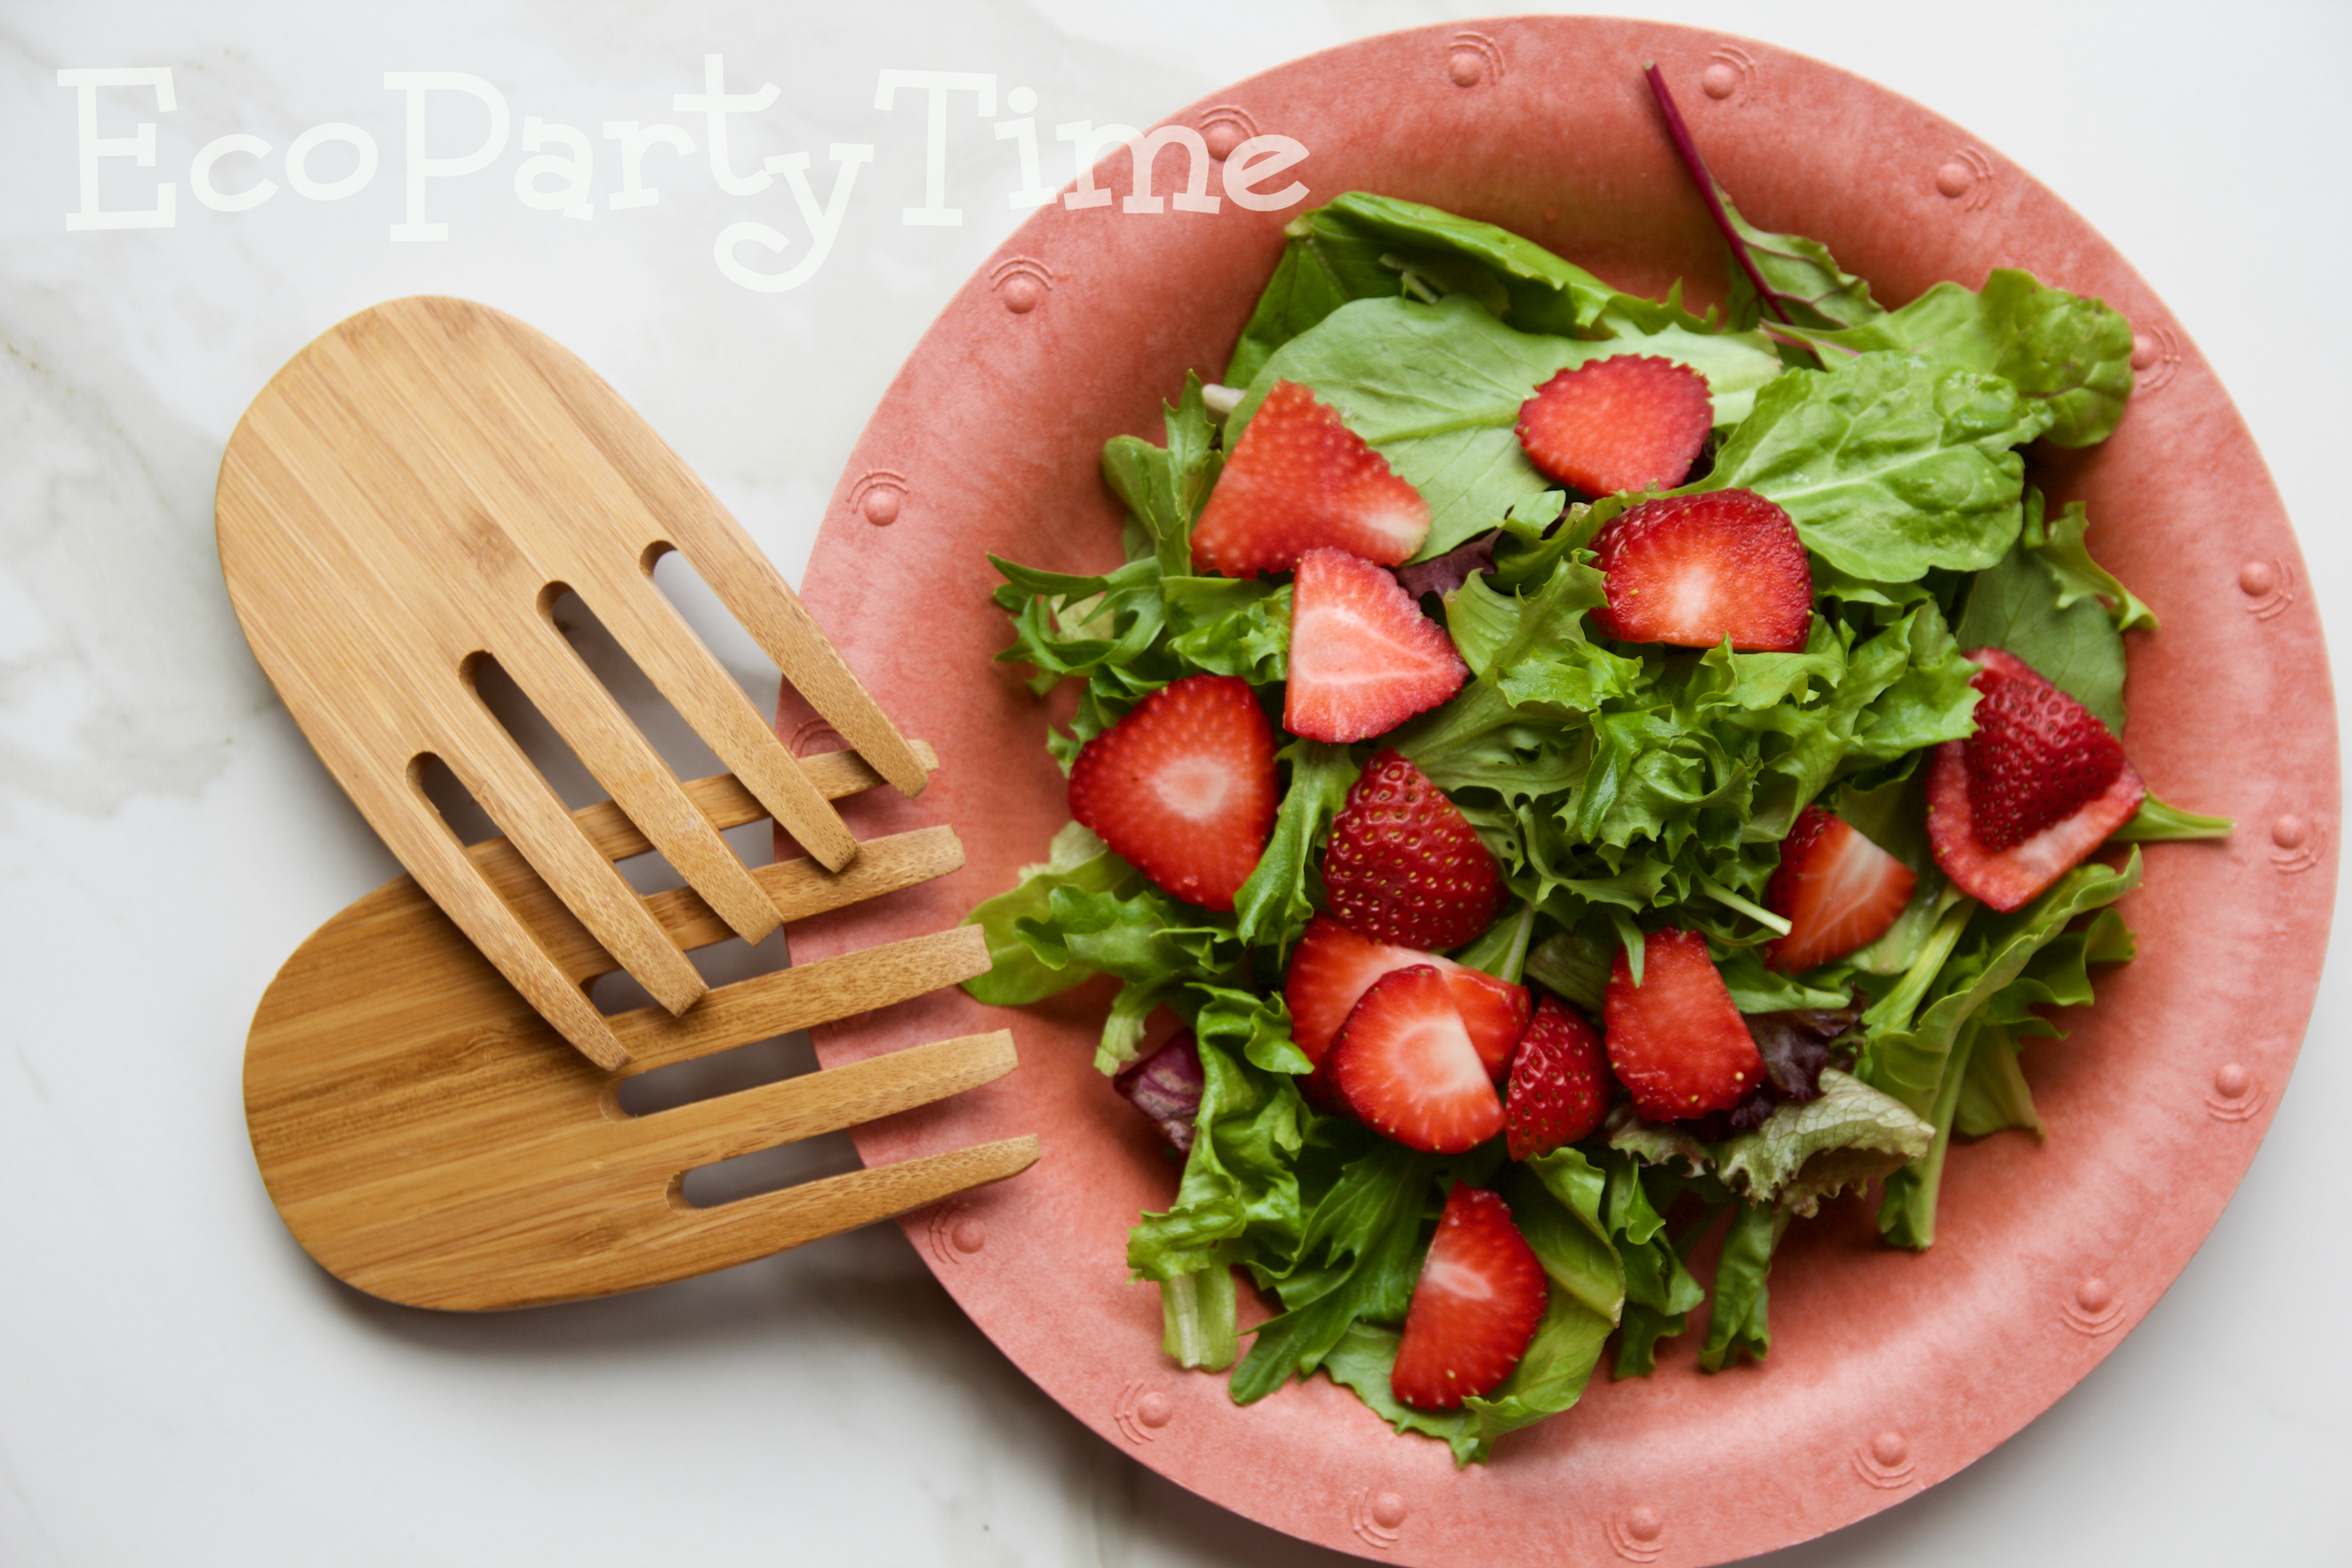 Ecopartytime: Eco-Friendly Strawberry Themed Party